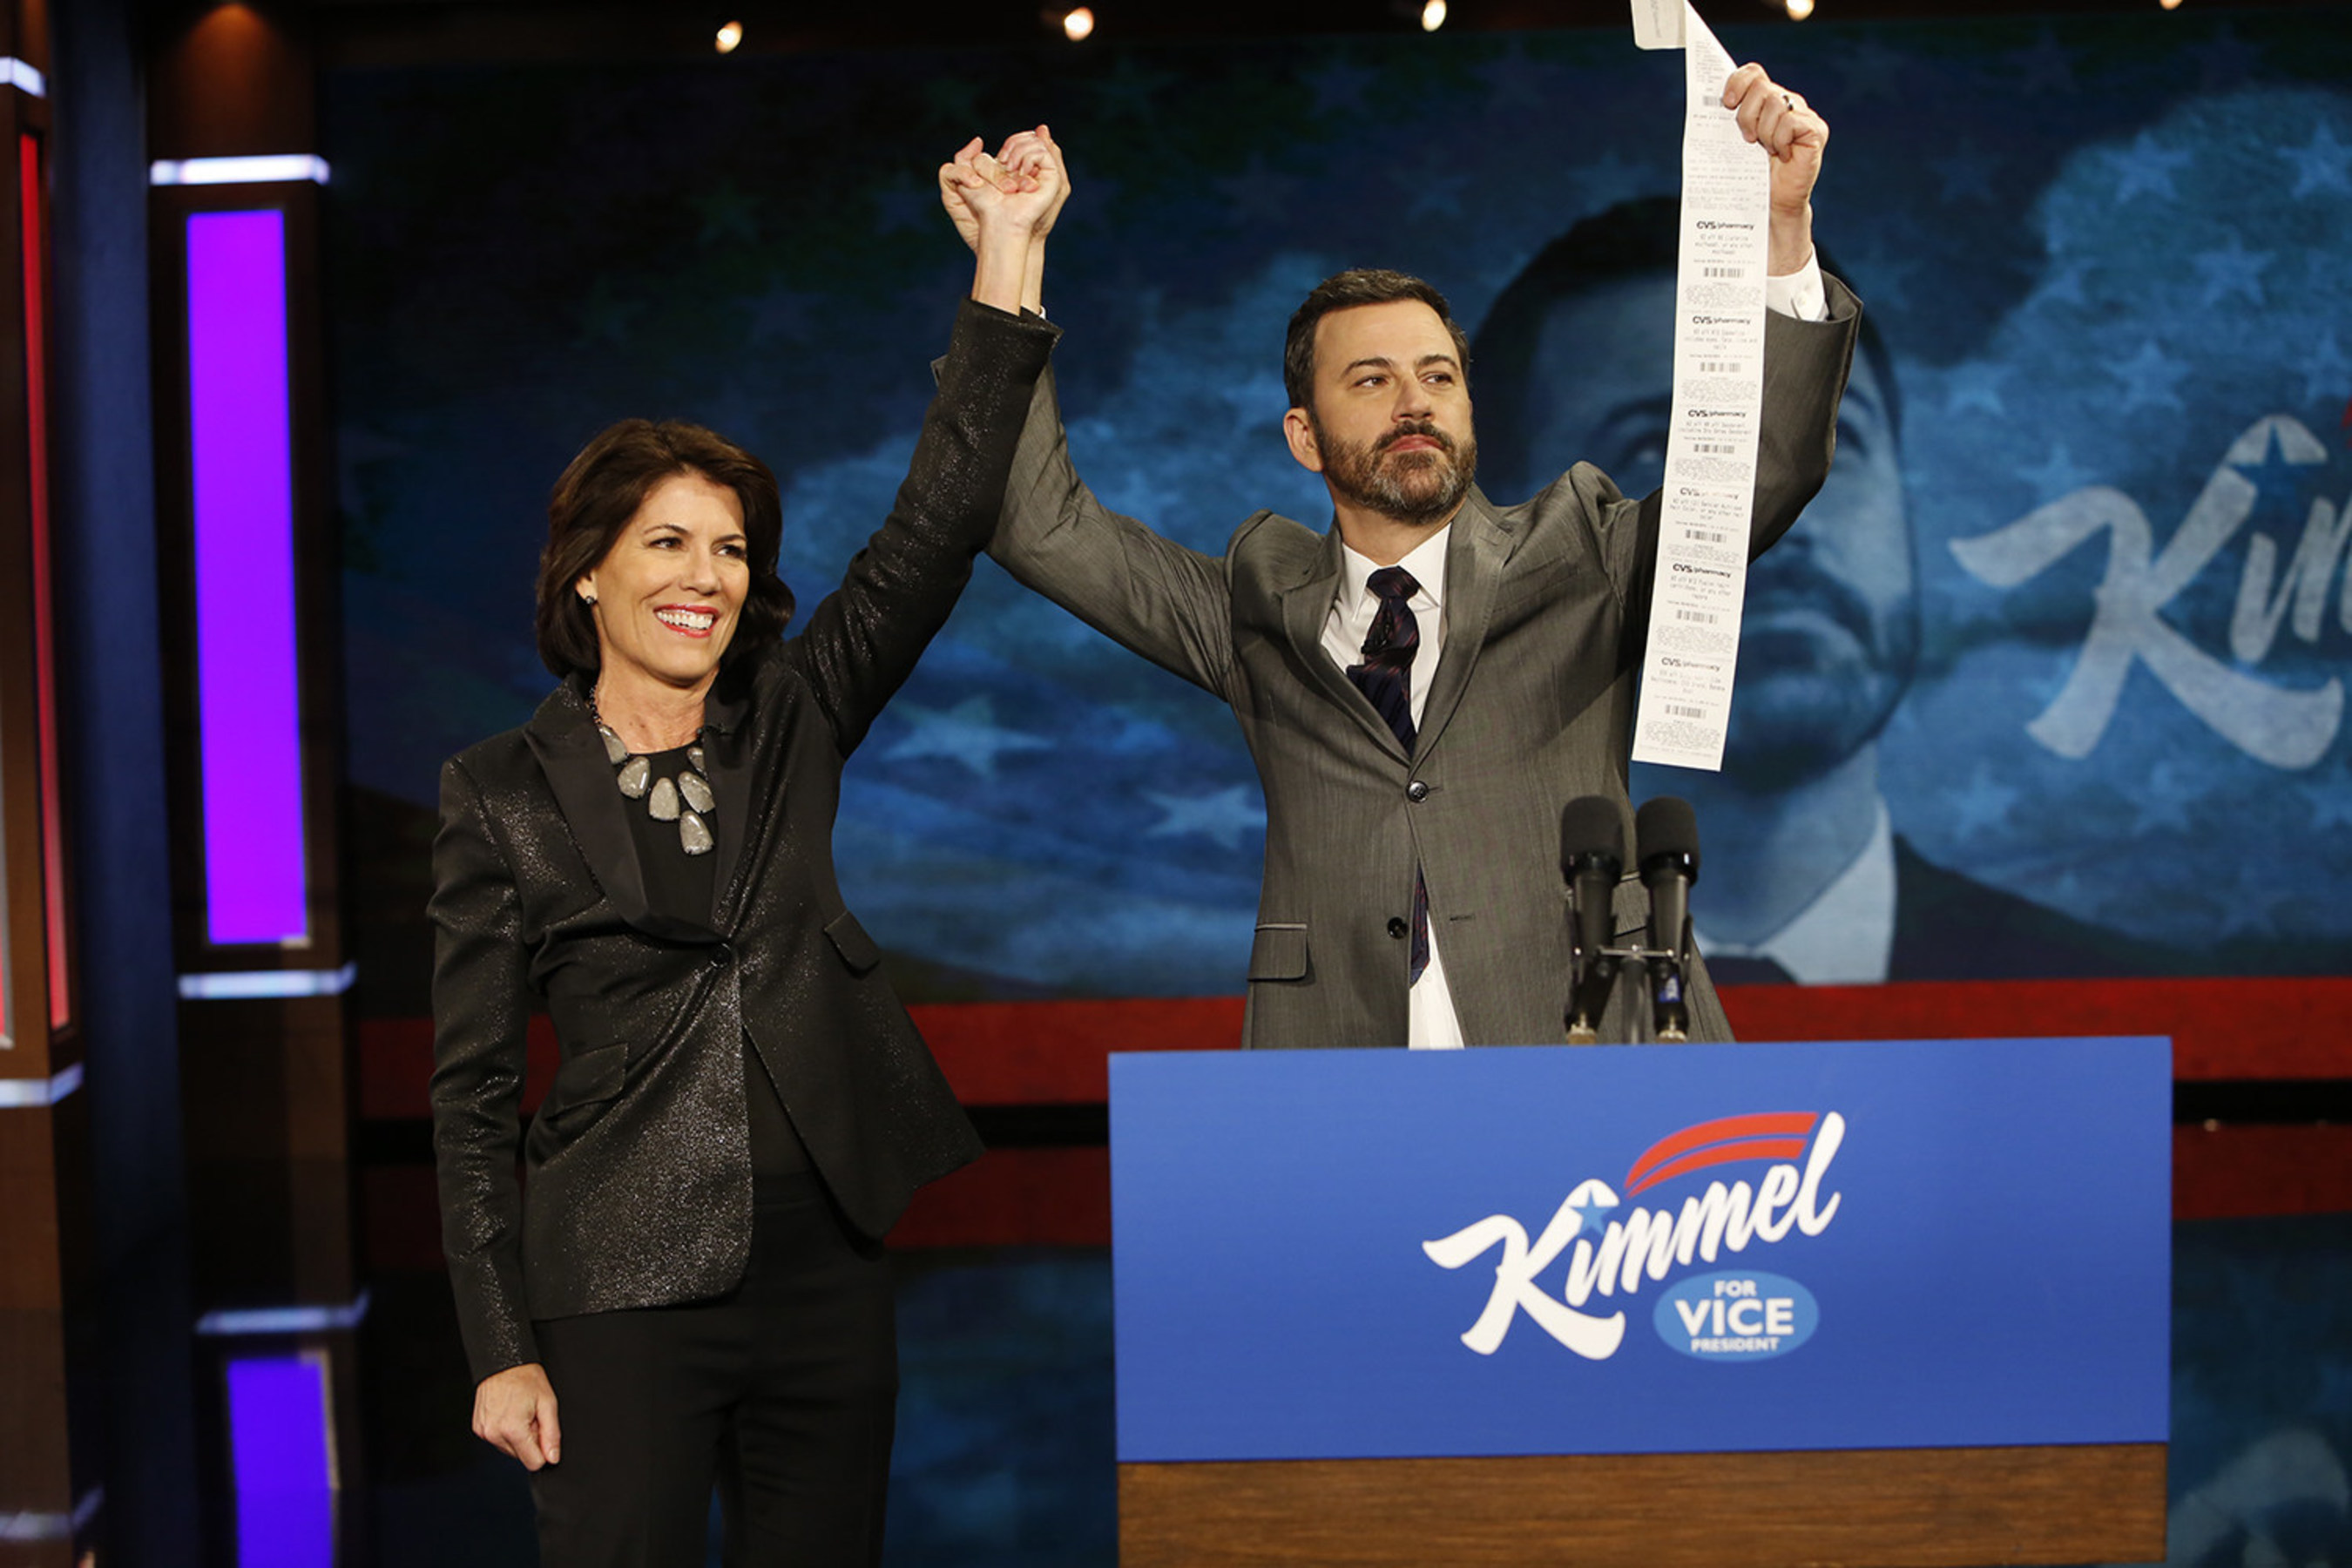 CVS Pharmacy President Helena Foulkes unveiled digital receipts in a surprise appearance on ABC's Jimmy Kimmel Live on Friday evening.